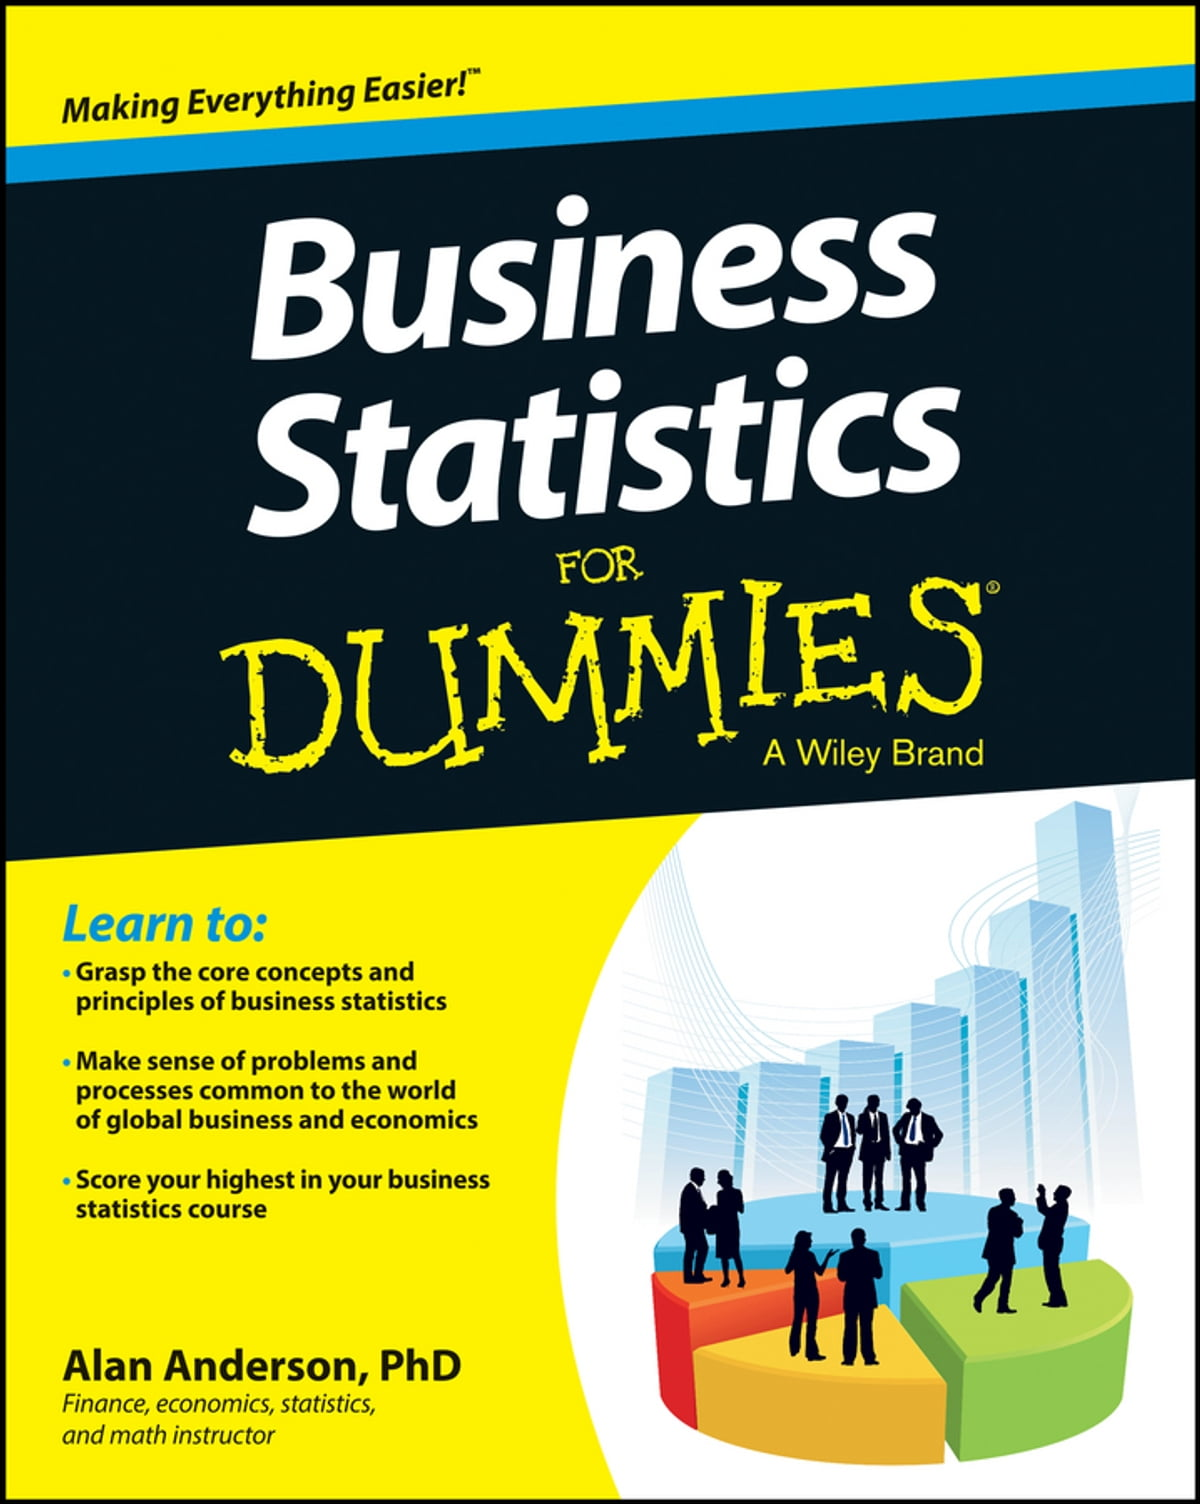 Business Statistics For Dummies eBook by Alan Anderson - 9781118784587 |  Rakuten Kobo